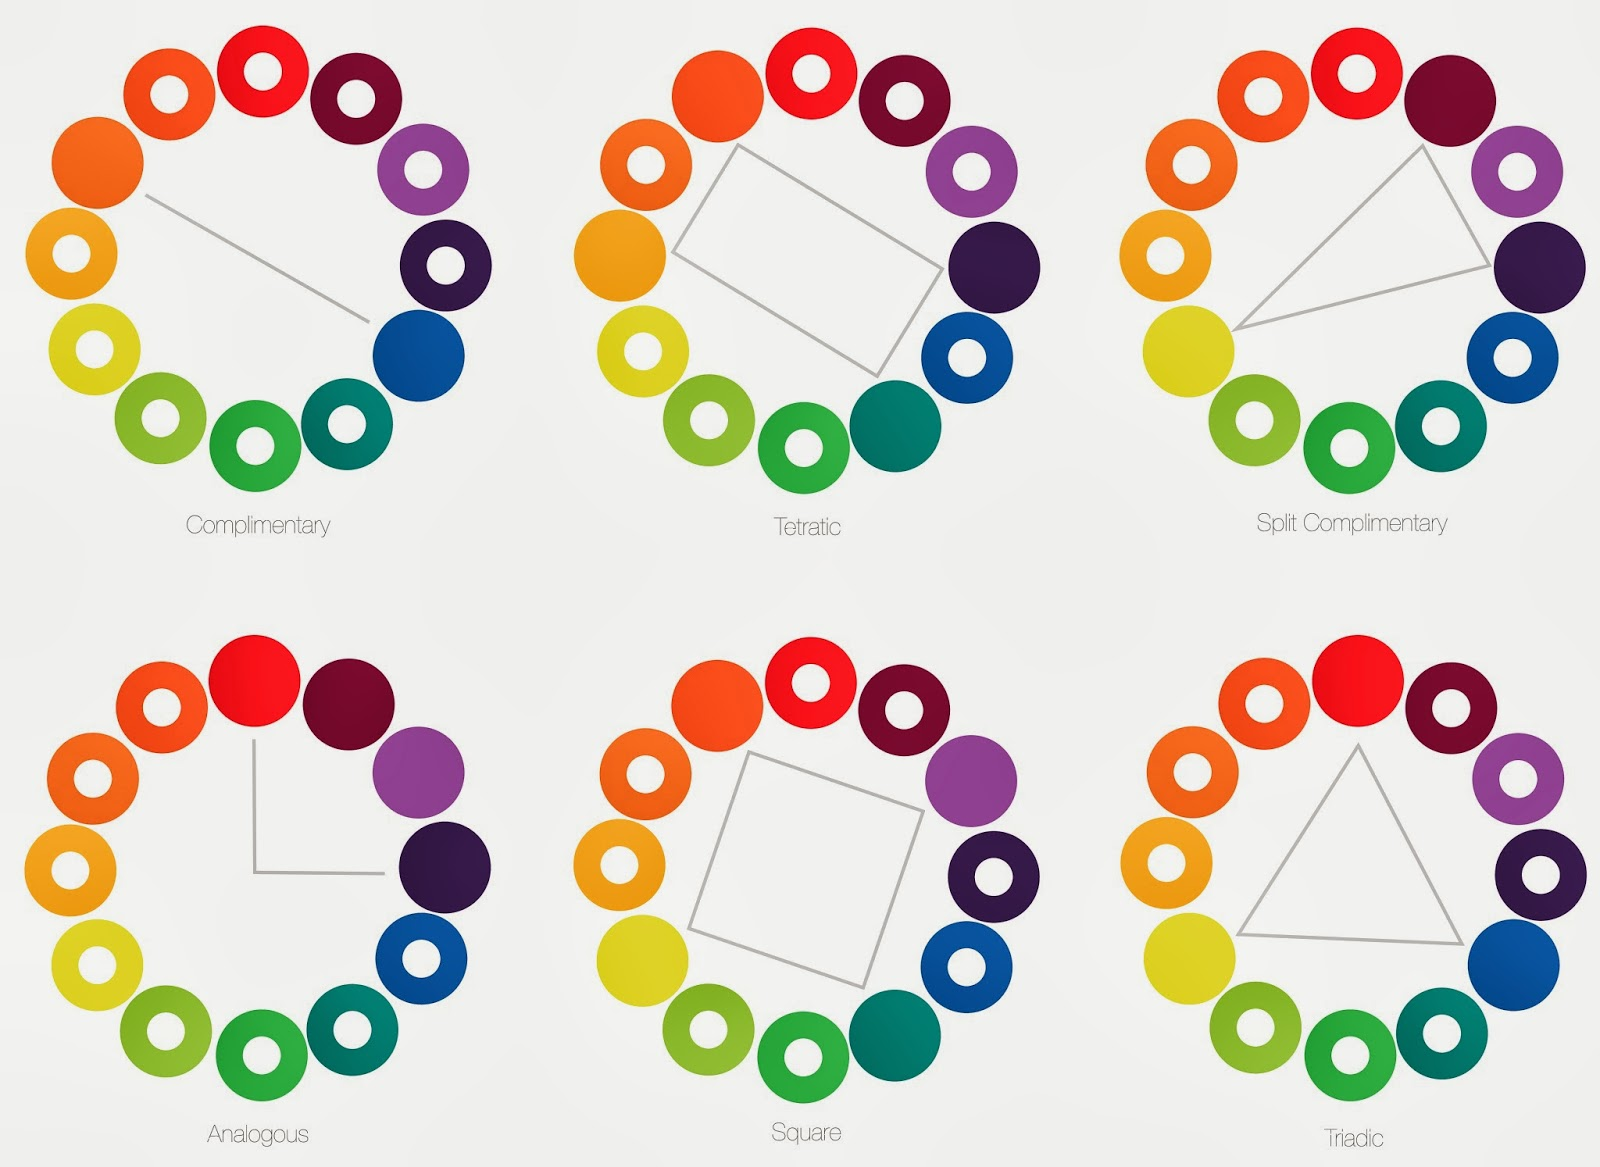 color schemes elementsprinciples of design - Color Schems